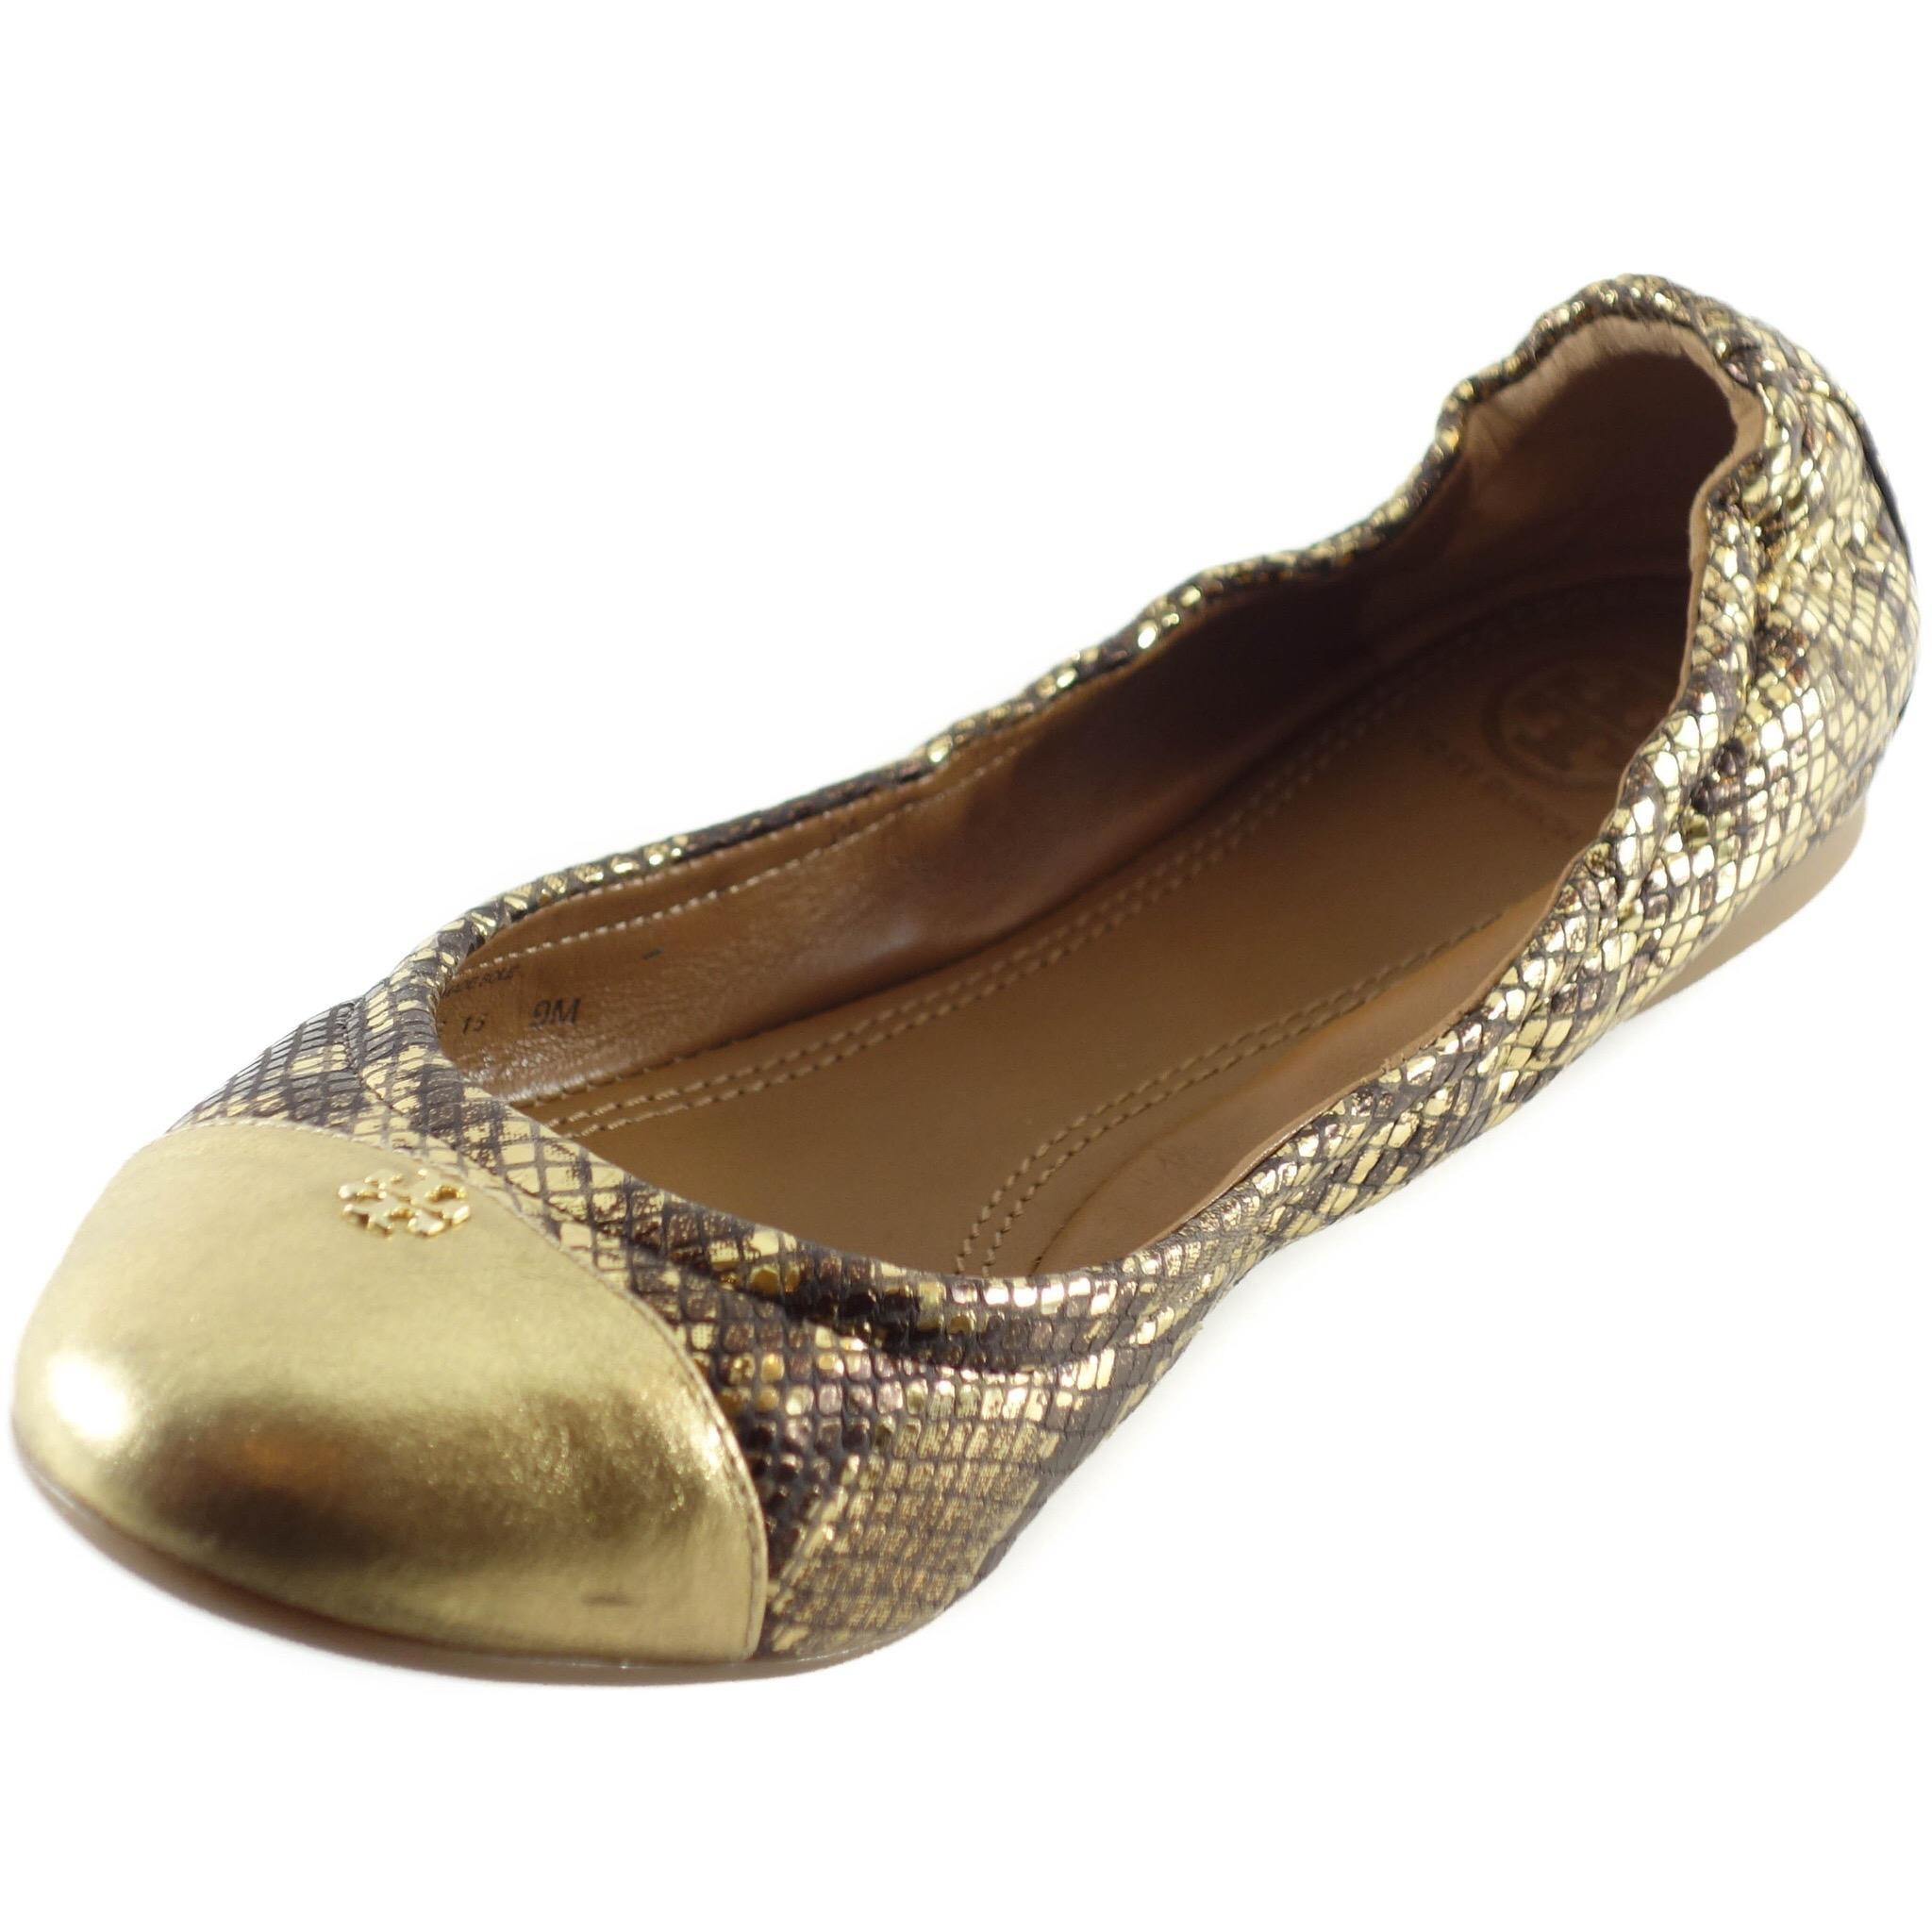 Tory Burch Gold York Metallic Roccia Powder Suede Ballet Flats Size US 7.5  Regular (M, B) - Tradesy